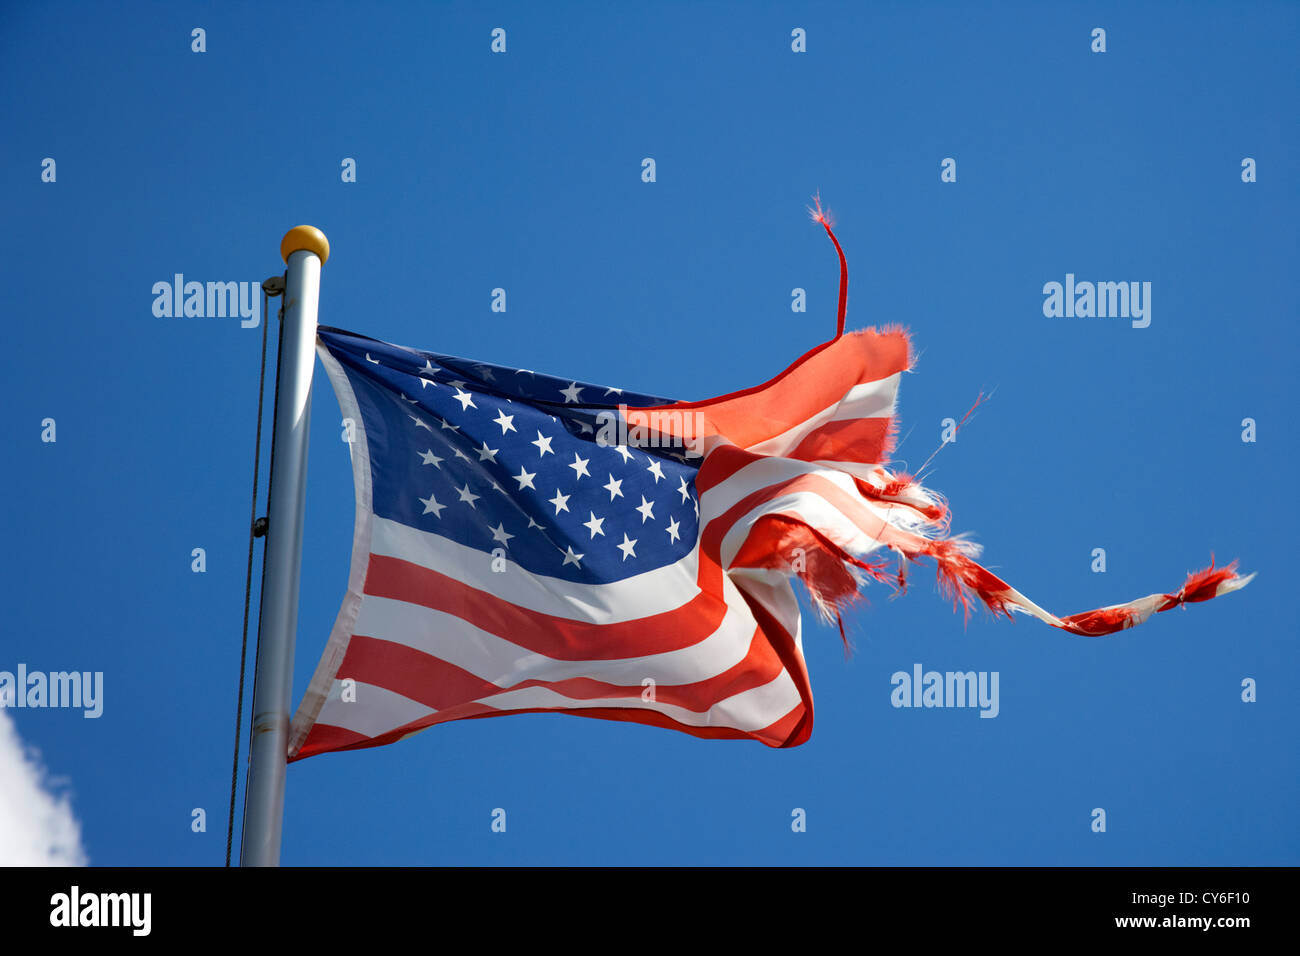 torn ragged us stars stripes flag flying american - Stock Image